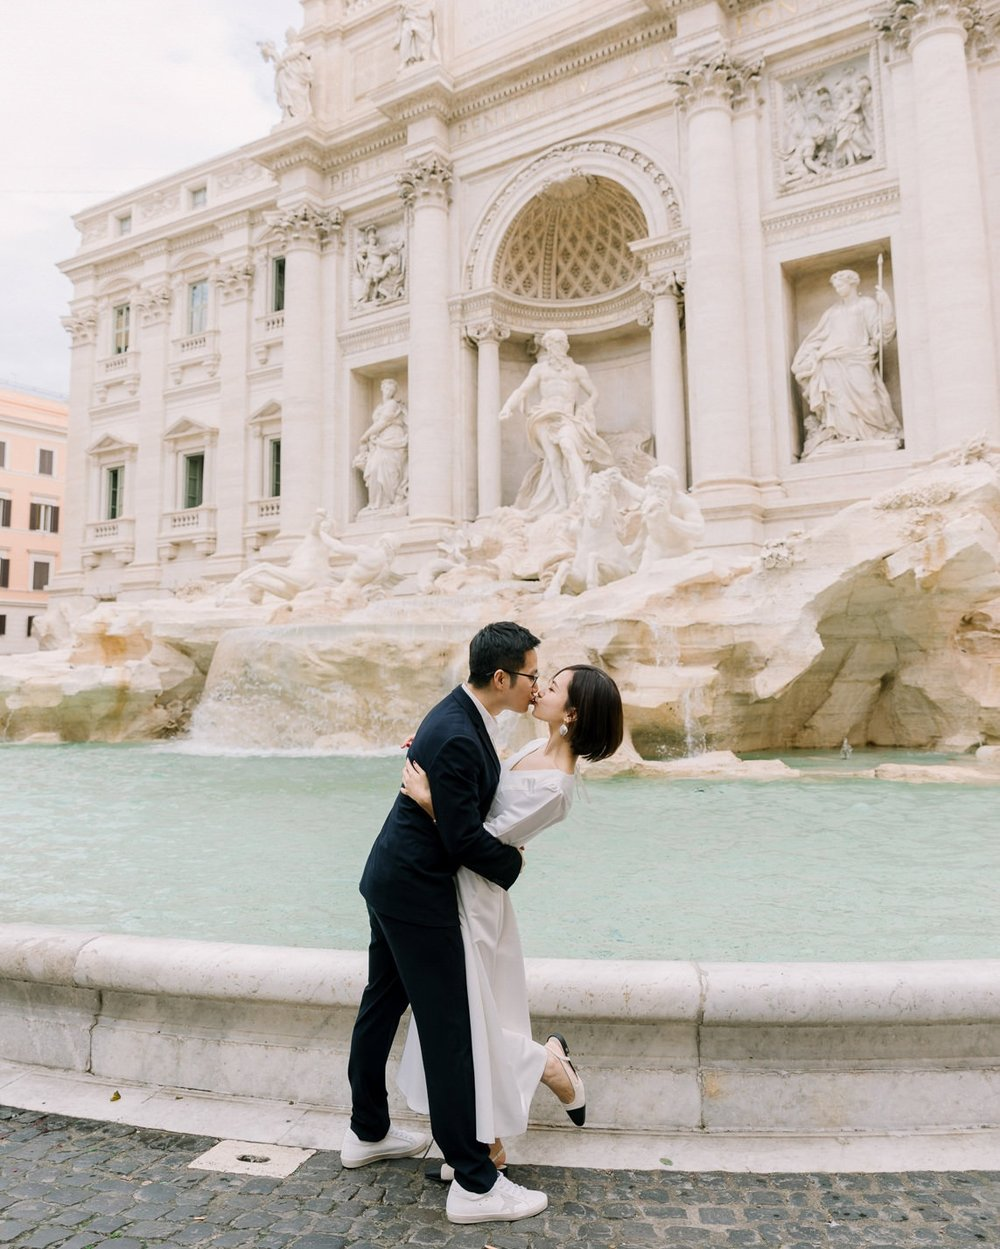 009_rome_engagement_prewedding_session_chymo_more_photography.jpg